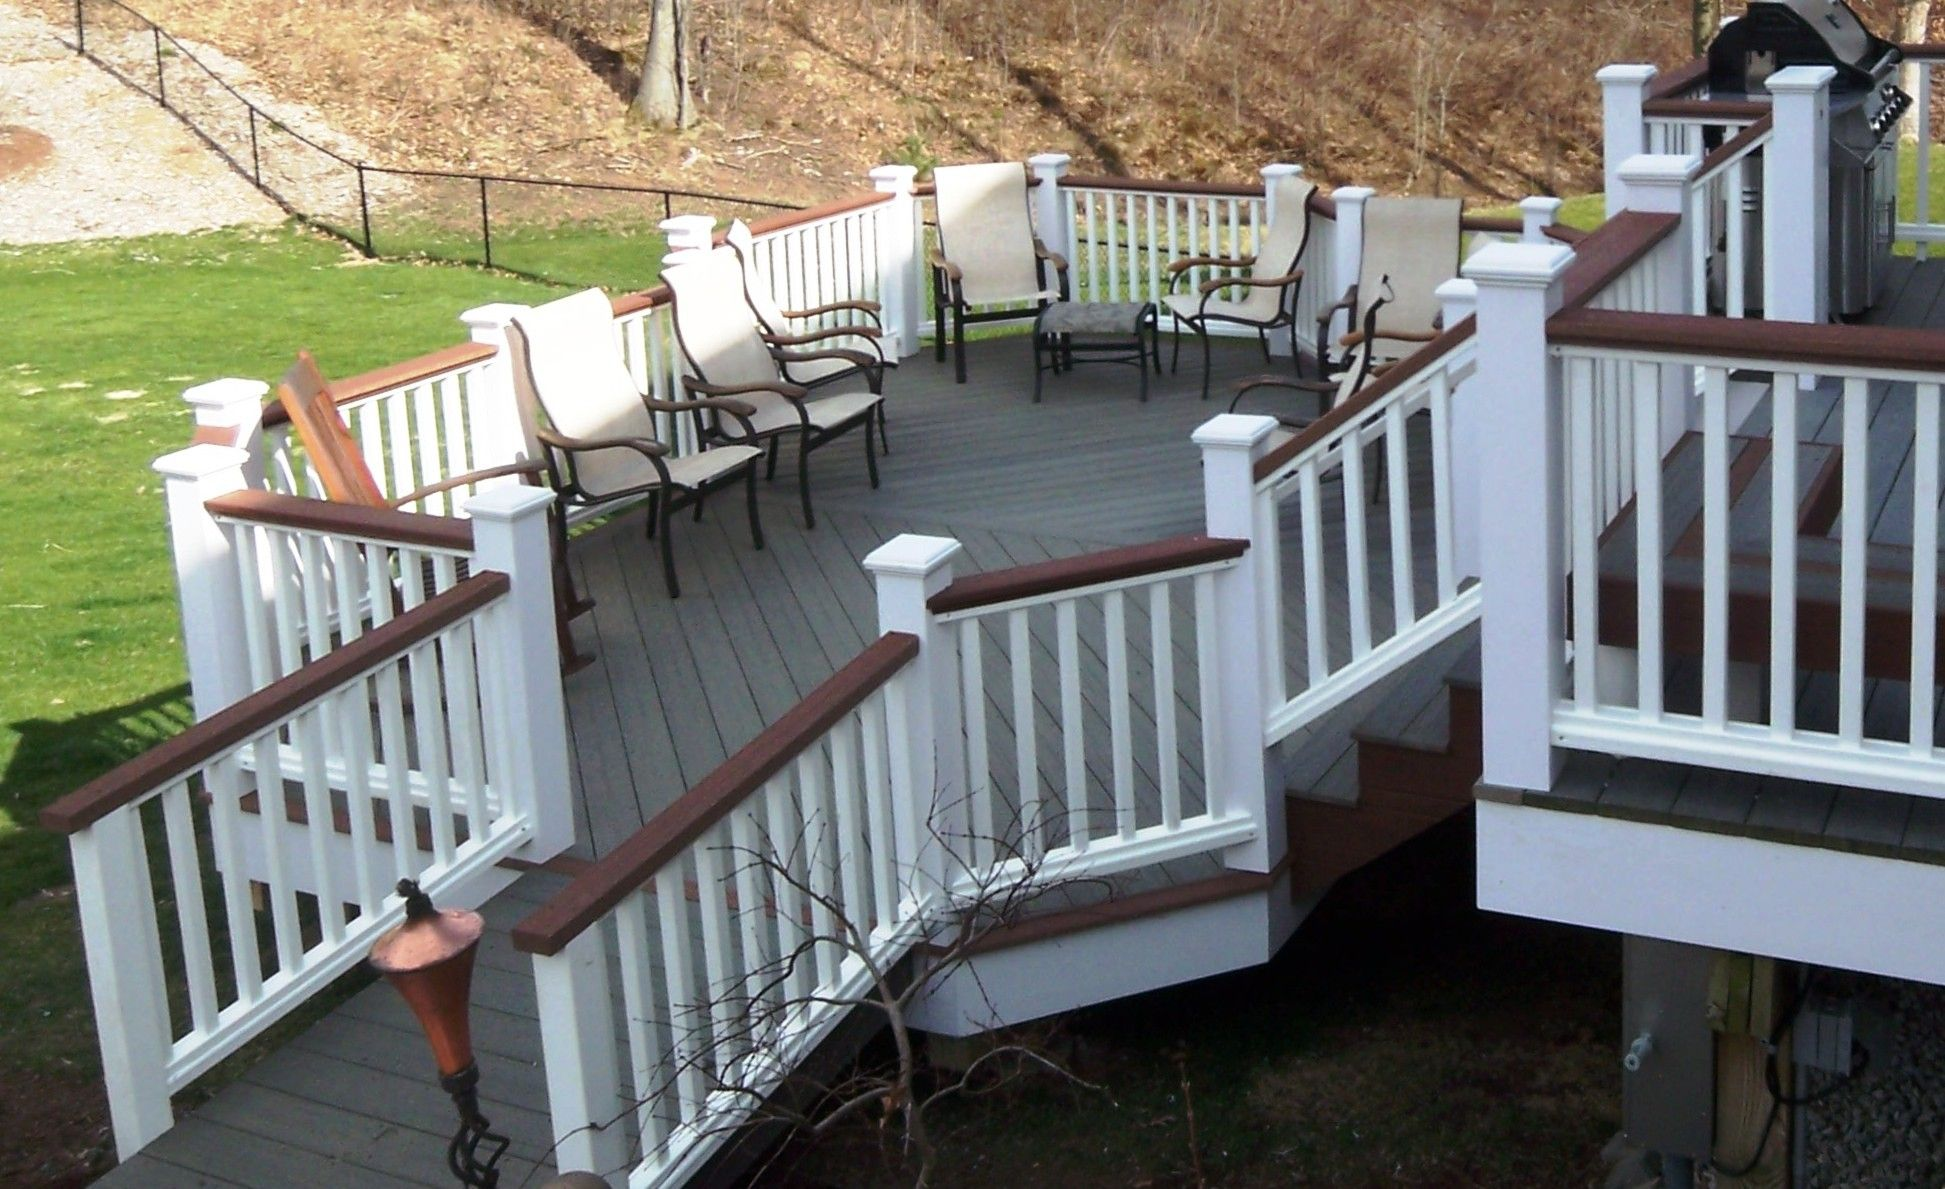 Trex-Decking-Colors-Lowes.jpg (1945×1189) | Outdoors ideas ...